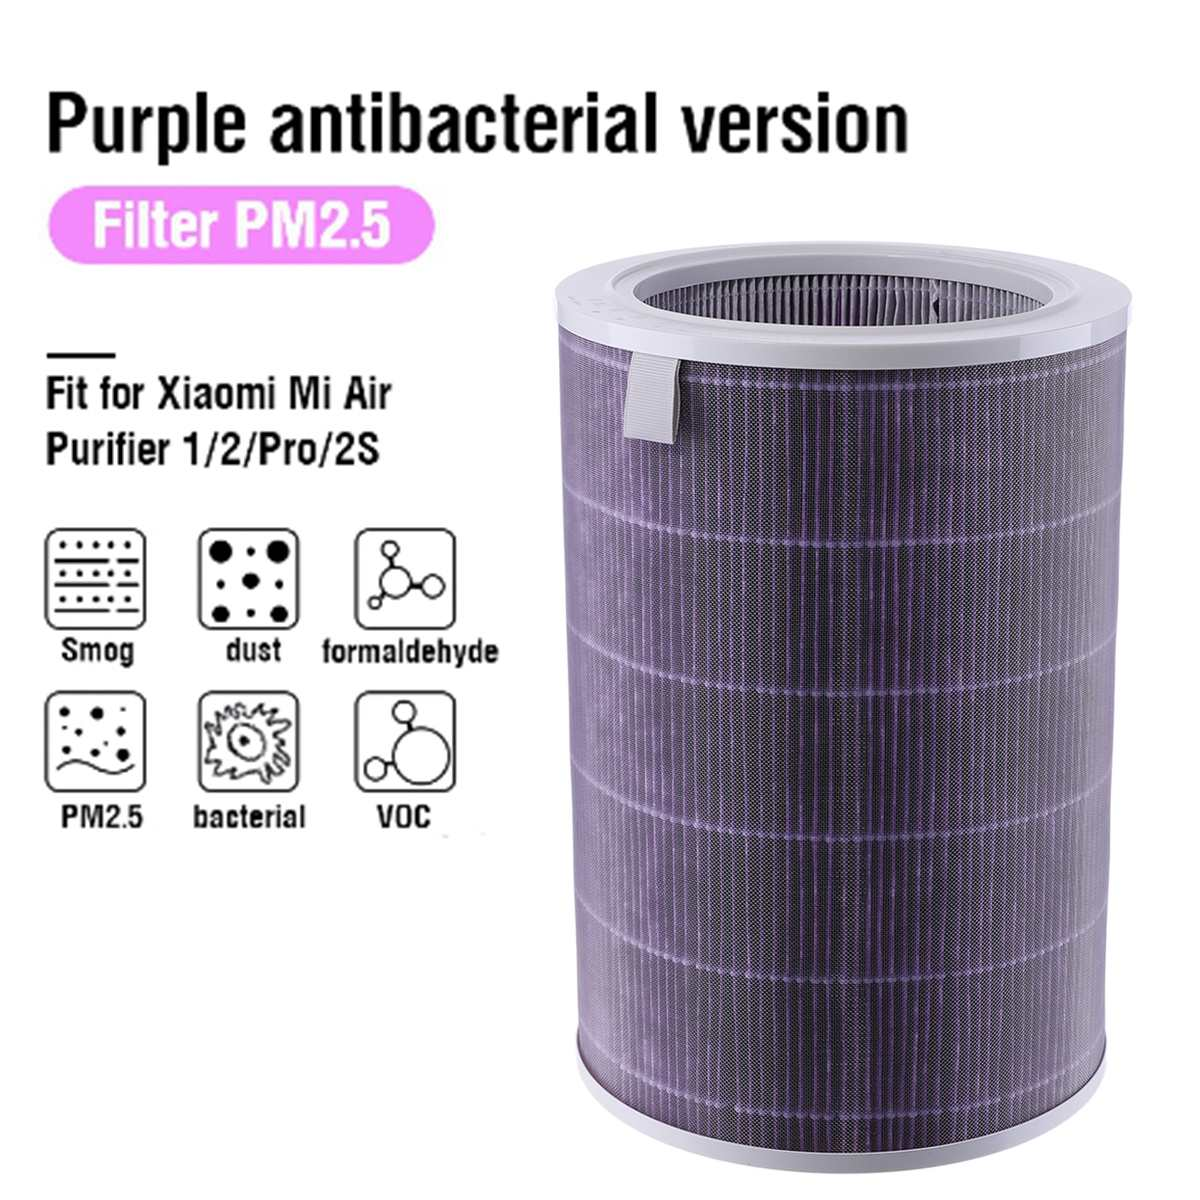 PM2.5 Carbon Hepa  Filter Replacement For 1/2/2S Pro  Purifier Filter Home  Remove Dust Formaldehyde